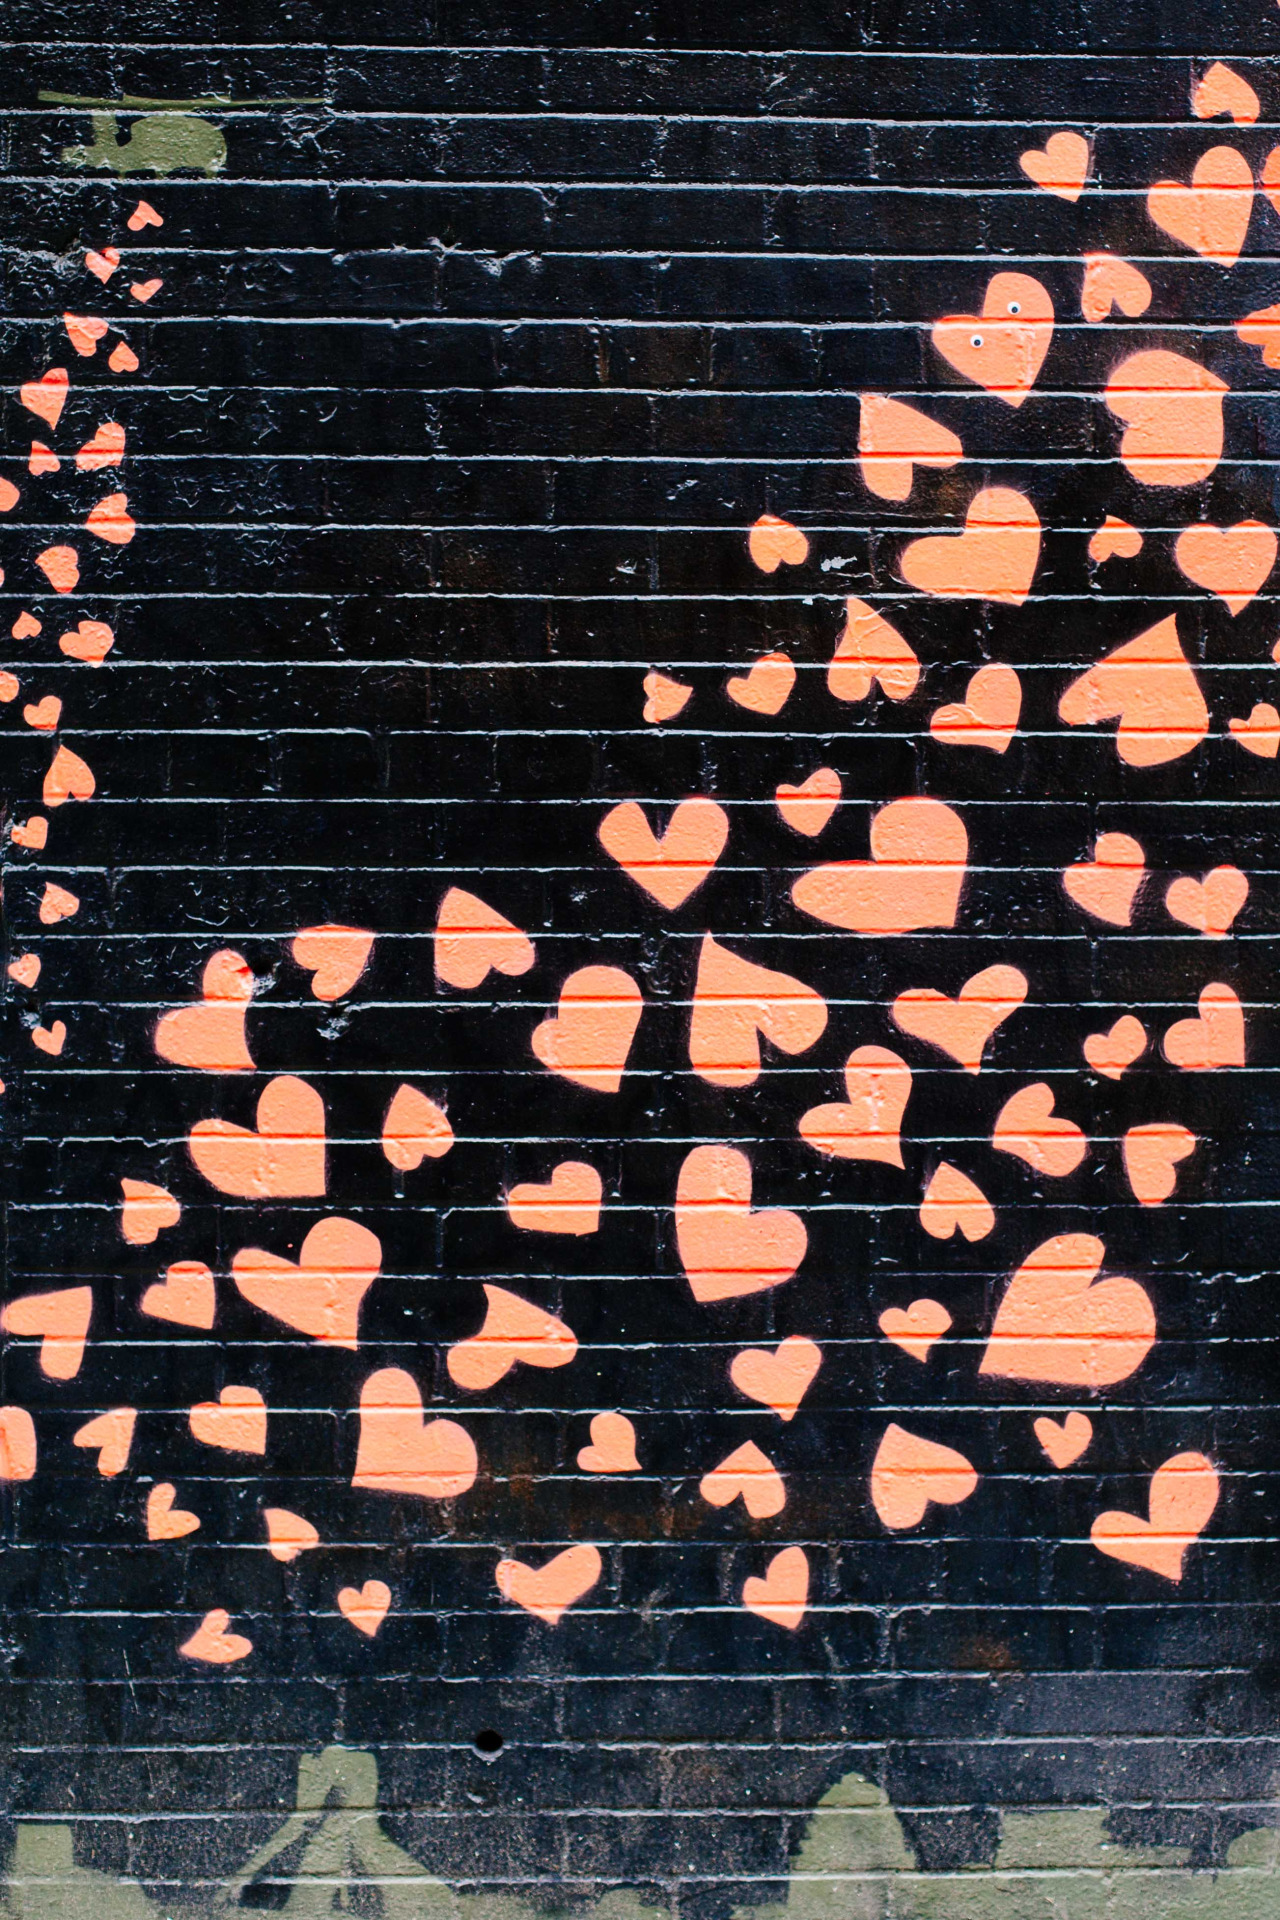 Hearts in the Lower East. April 2014.